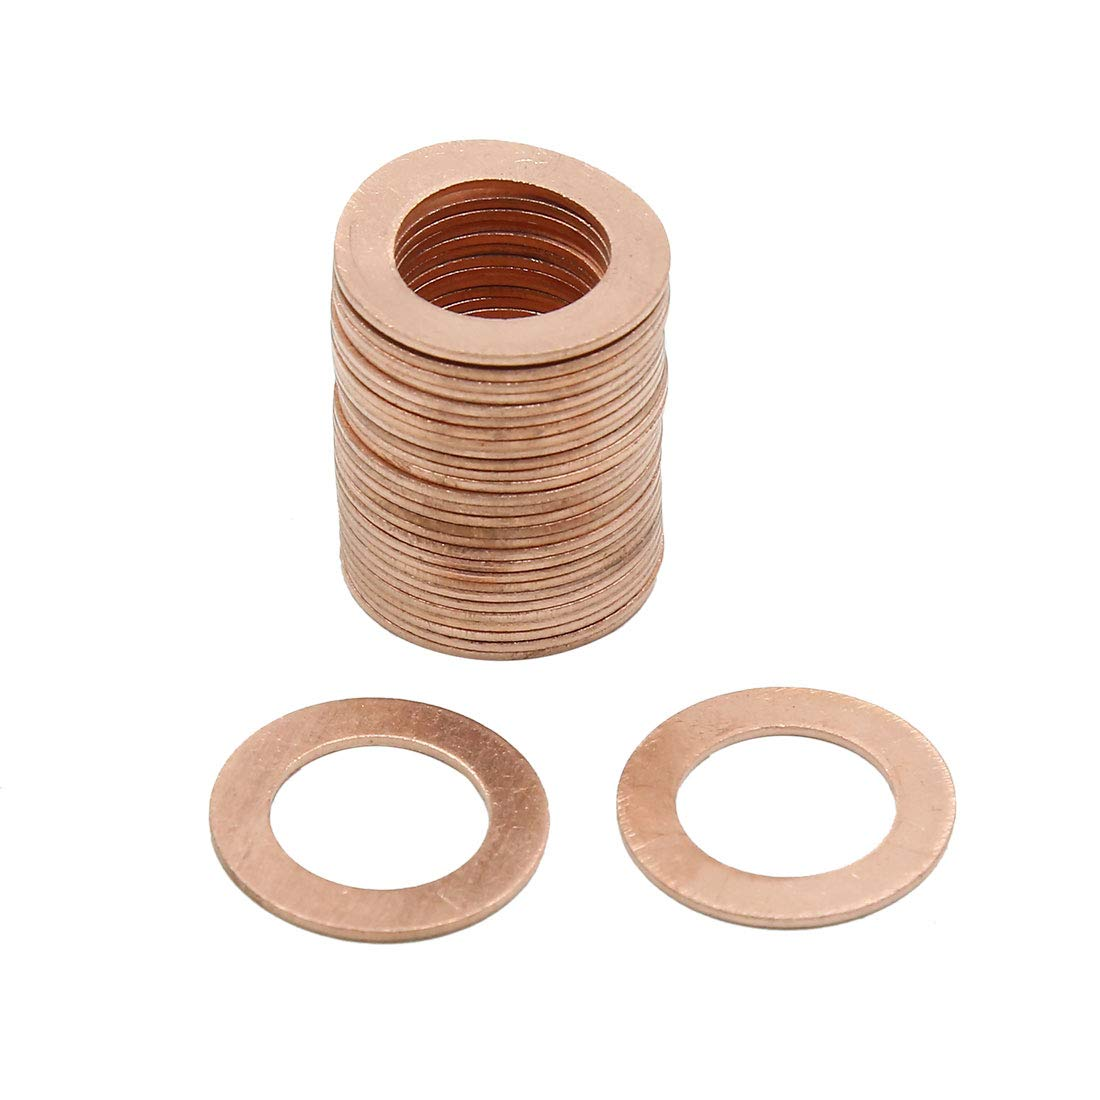 X AUTOHAUX 15mm Inner Dia Copper Crush Washers Car Flat Sealing Plate Gaskets Rings 30pcs by X AUTOHAUX (Image #1)